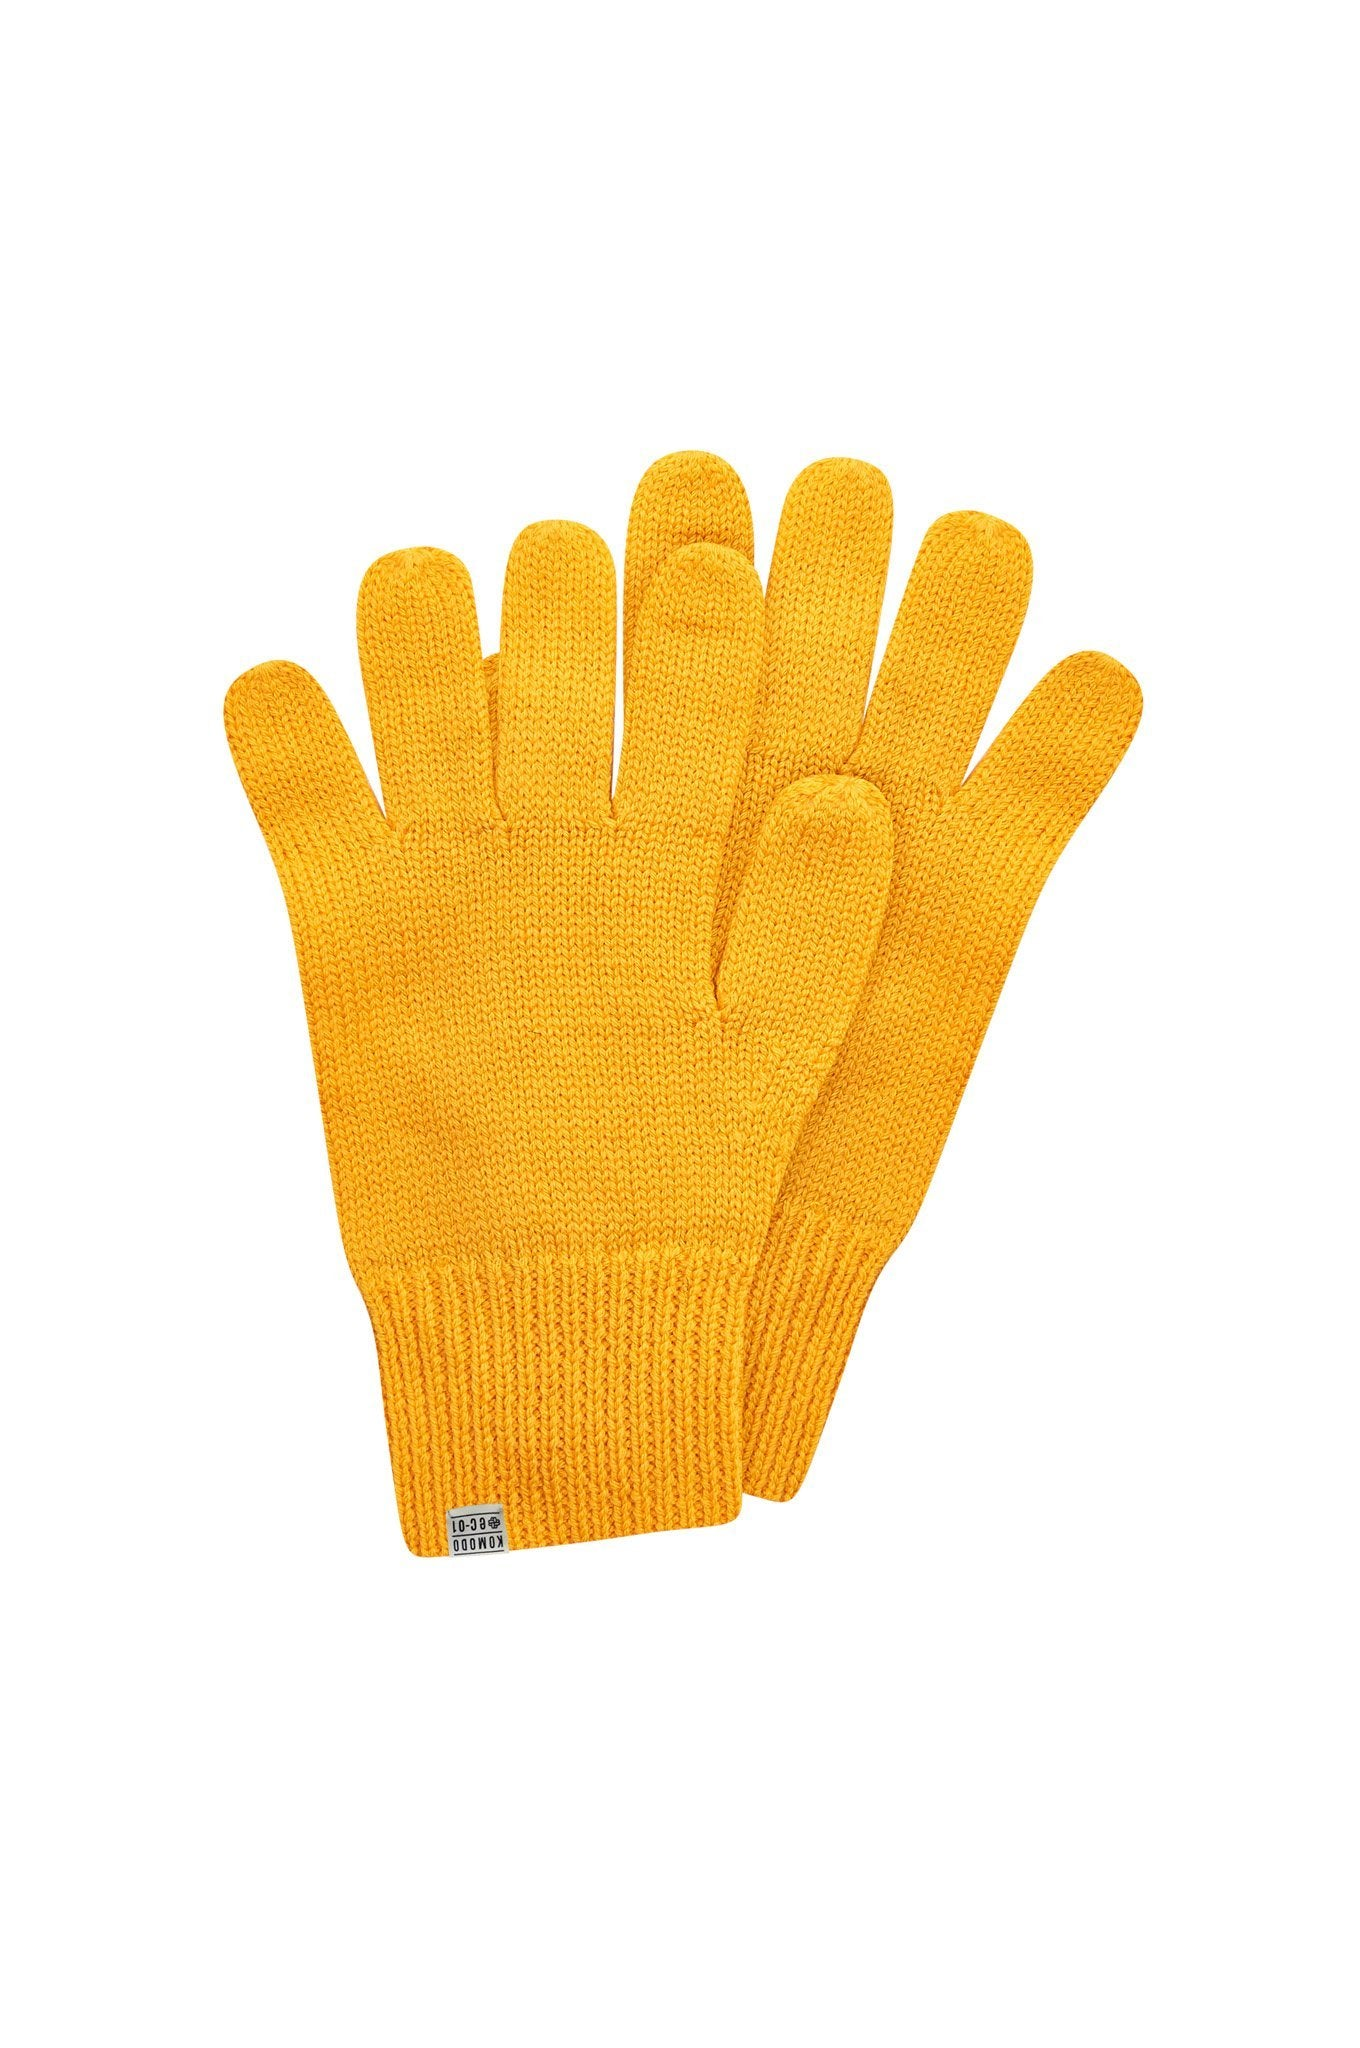 TORN Merino Wool Gloves Marigold - Komodo Fashion